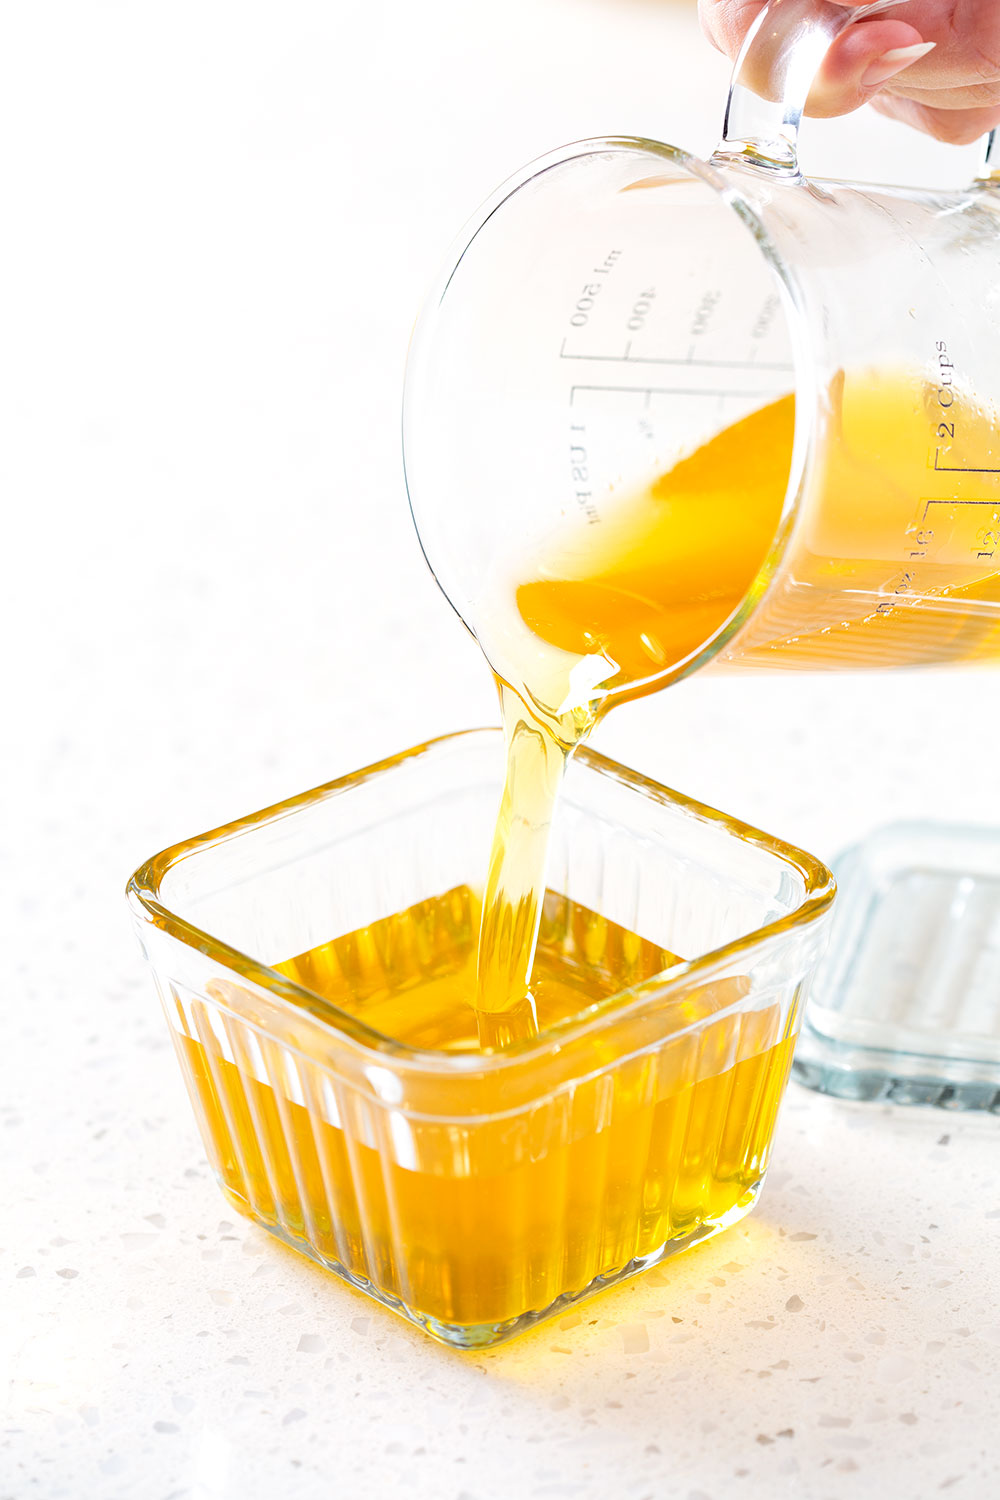 pouring melted homemade ghee into a glass butter dish